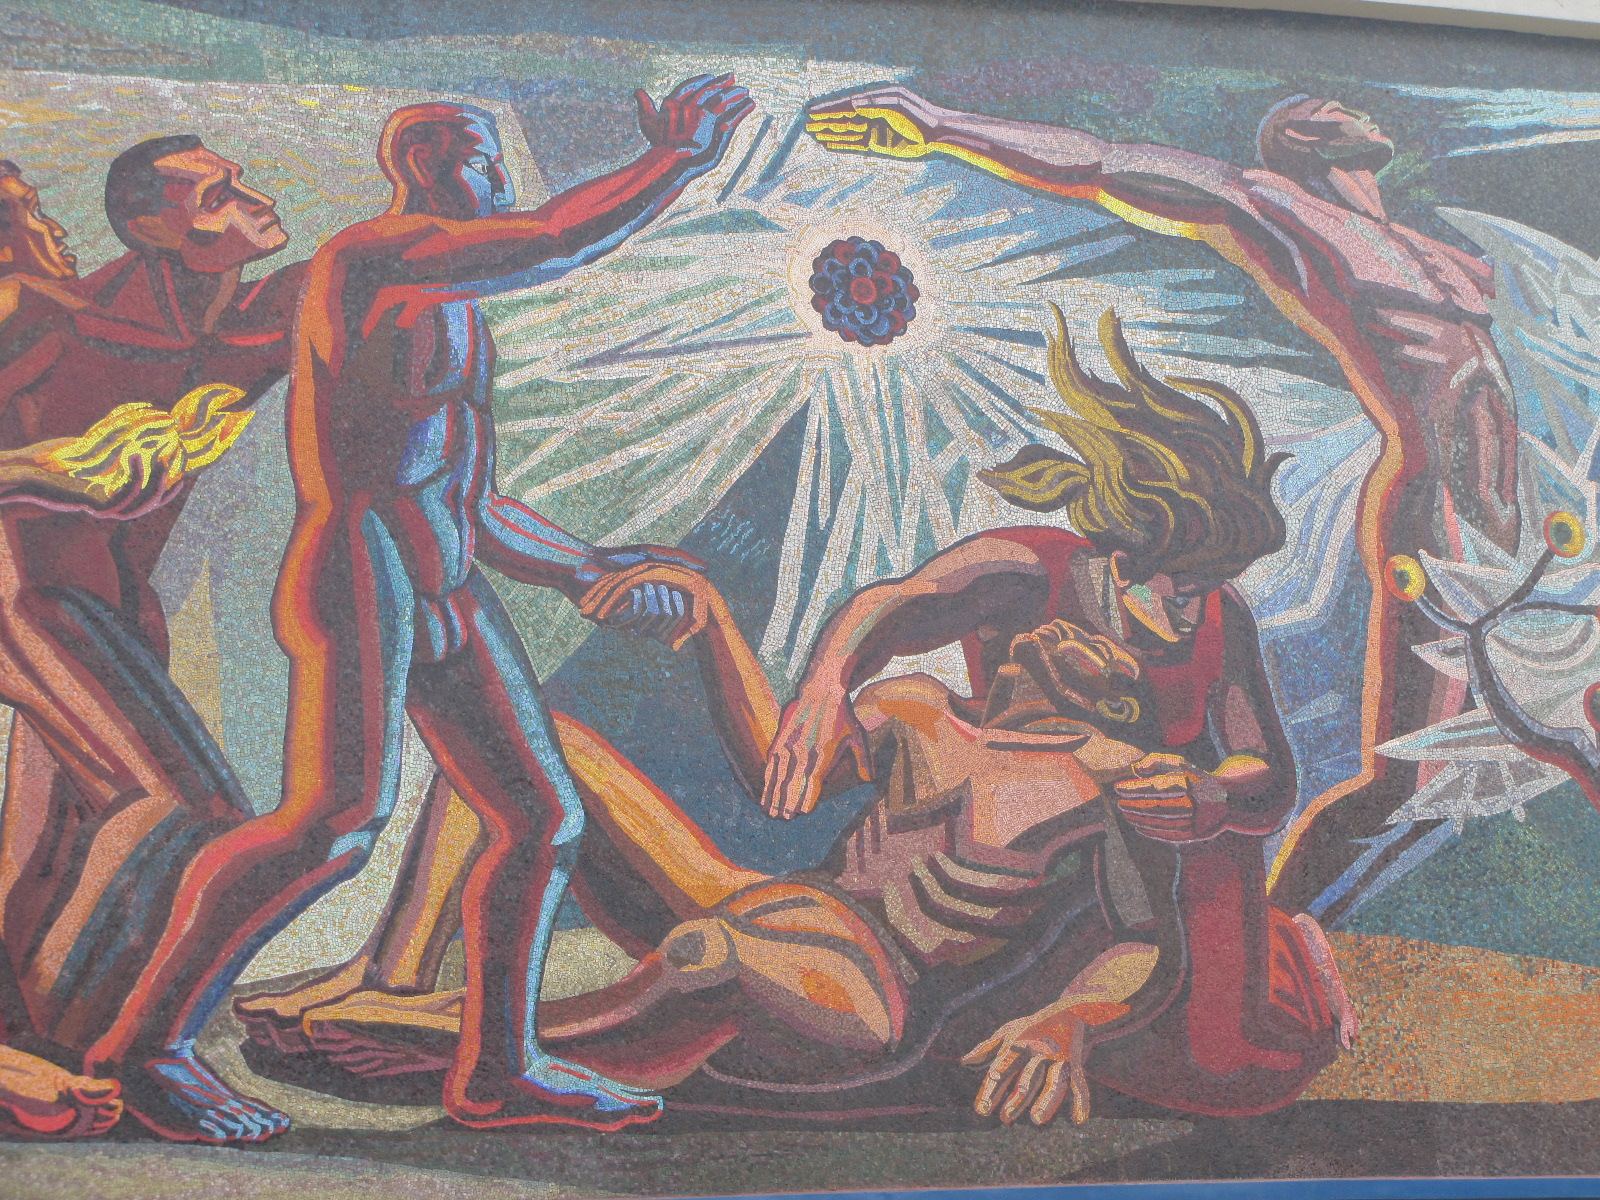 The Conquest of Energy (detail)